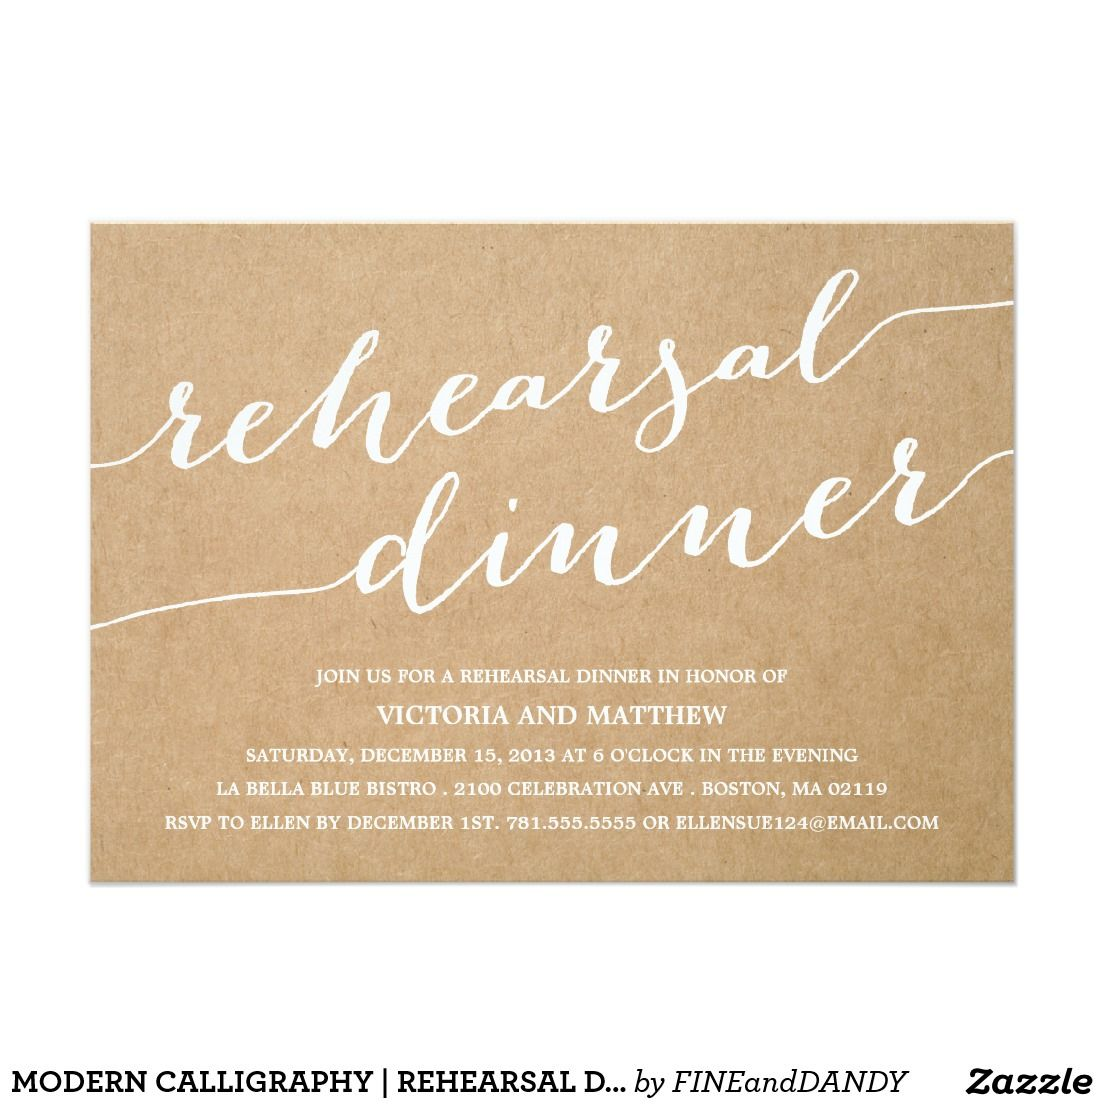 Modern Calligraphy Rehearsal Dinner Invitation Wedding